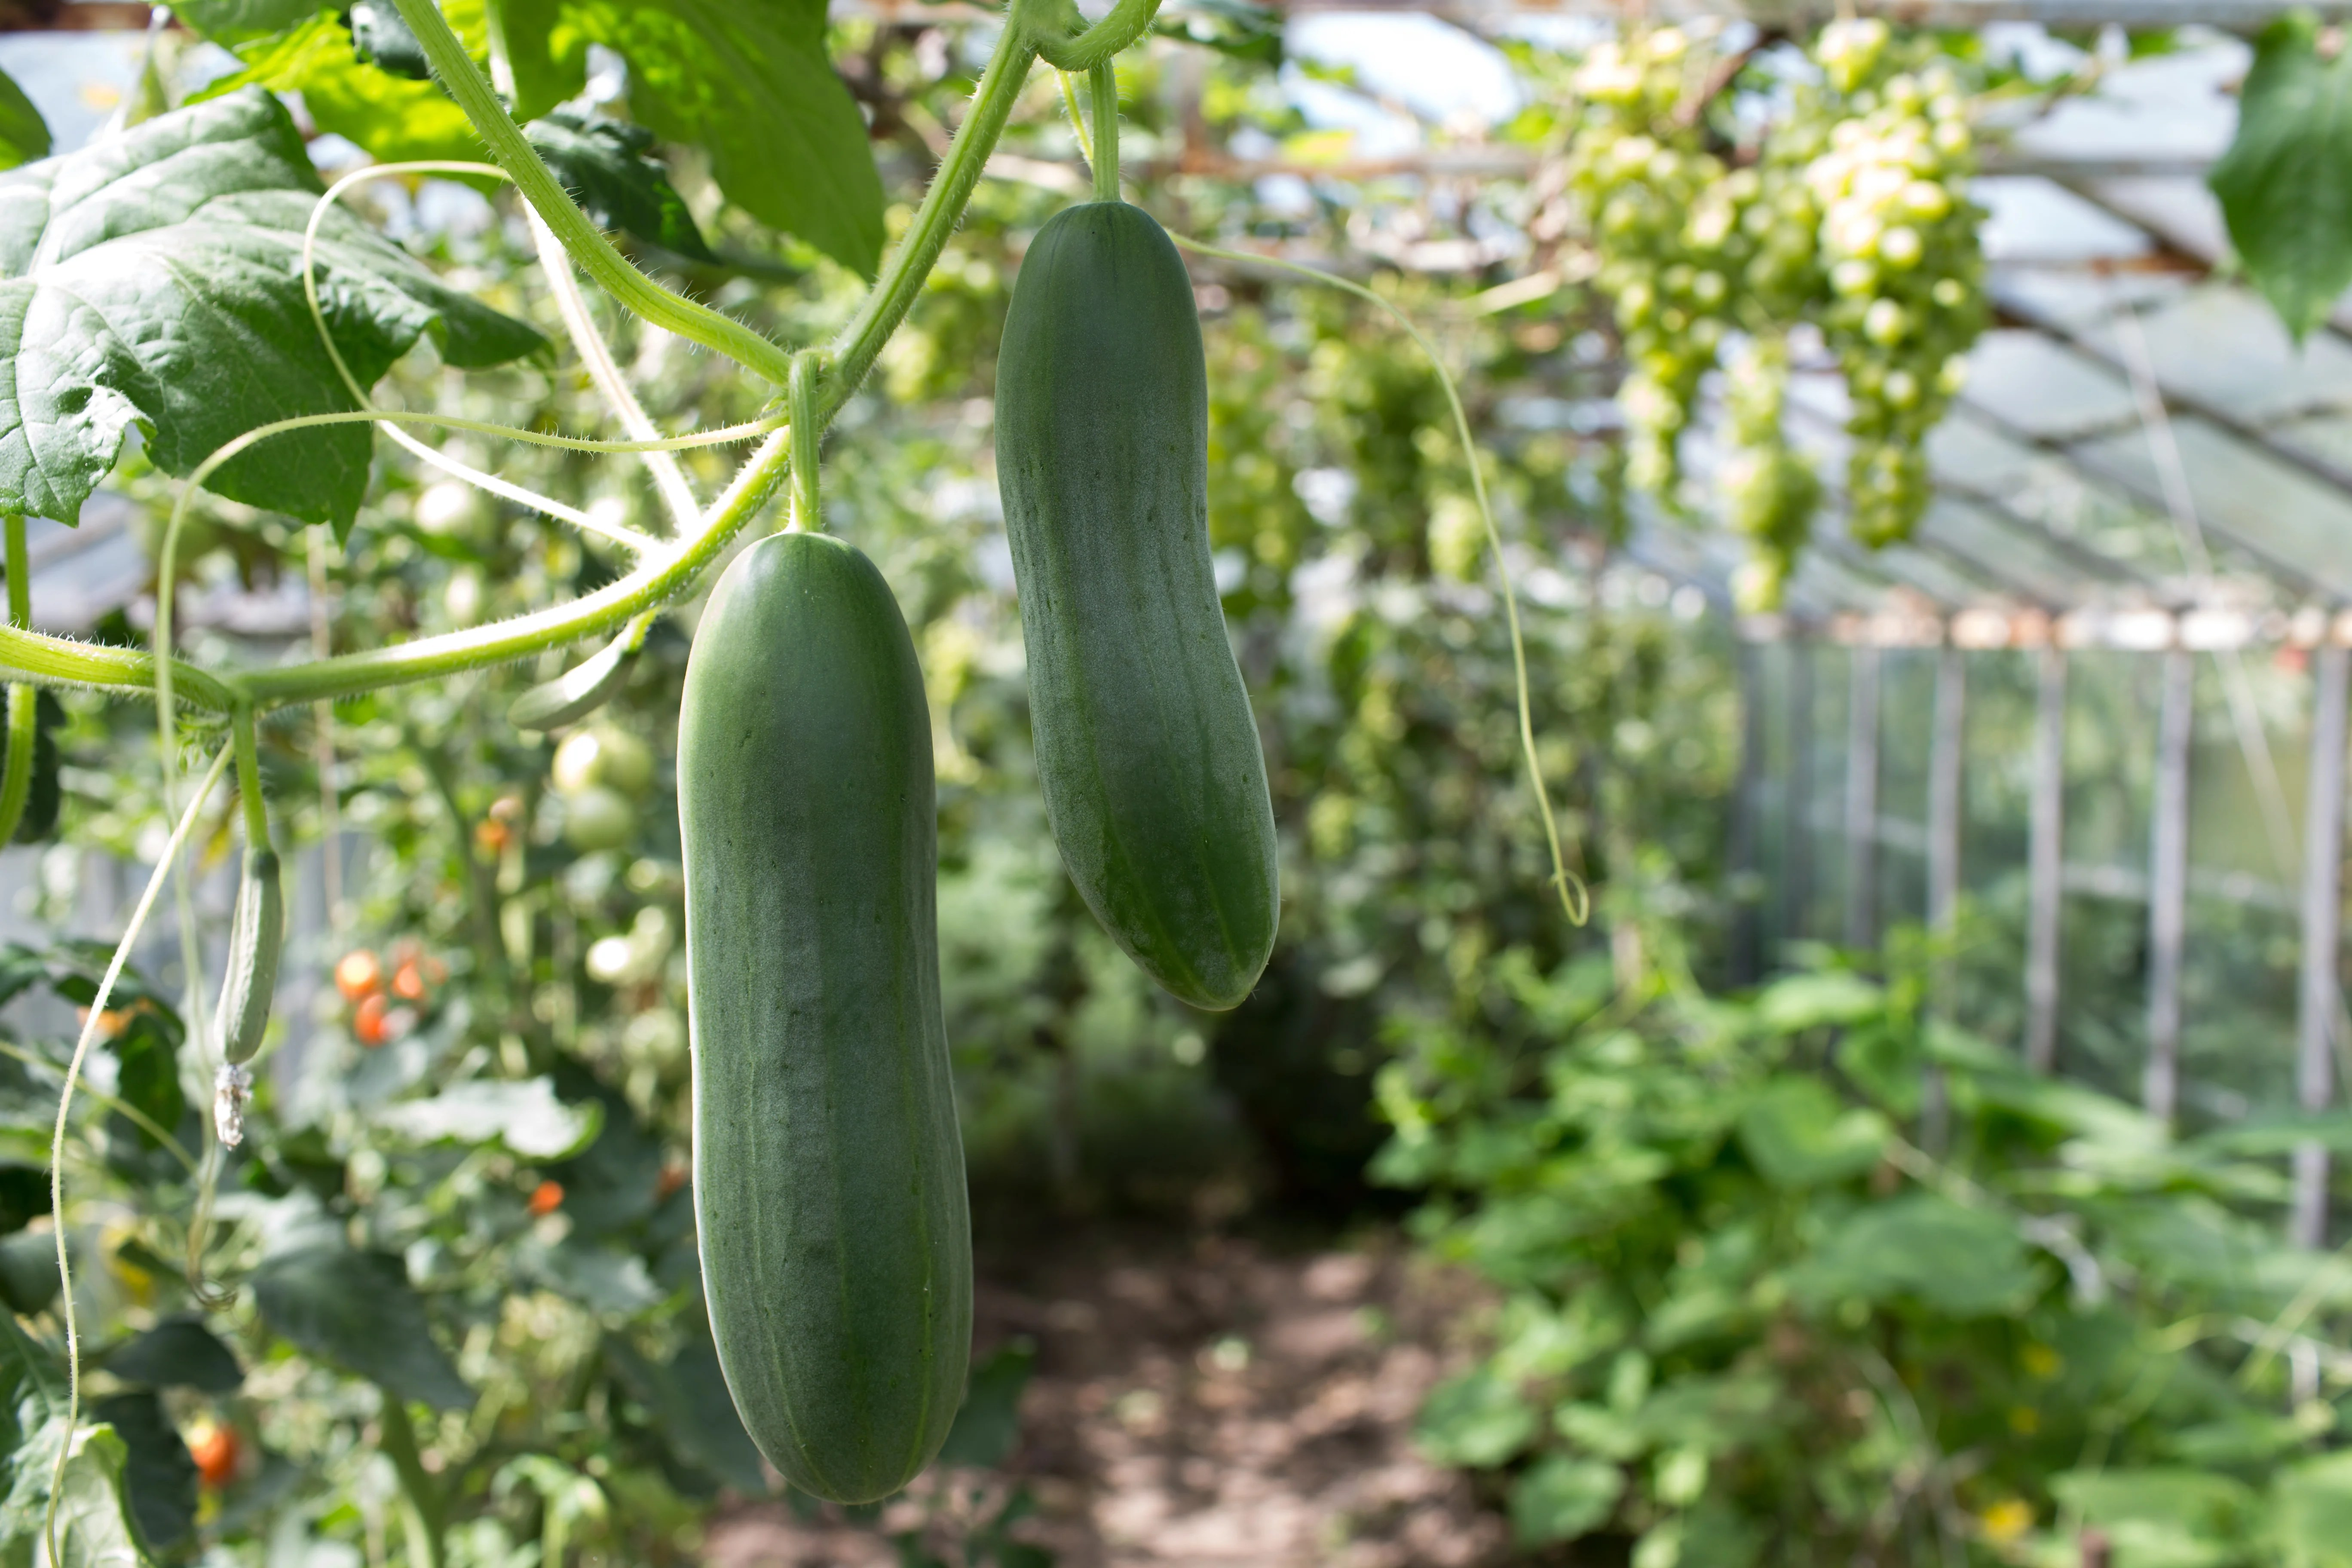 30 Second Guide to Growing Cucumbers